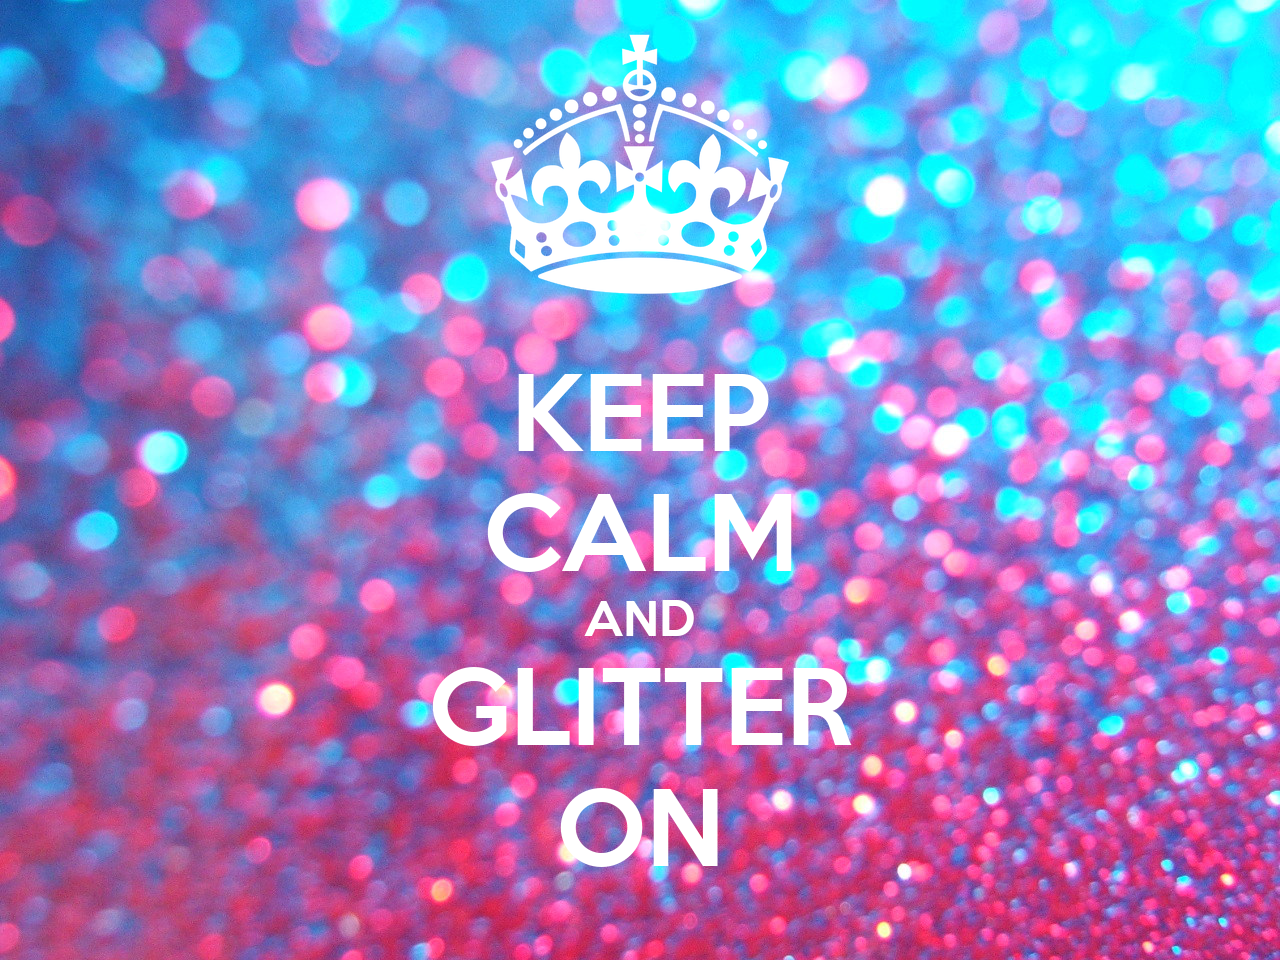 KEEP CALM AND GLITTER ON Poster